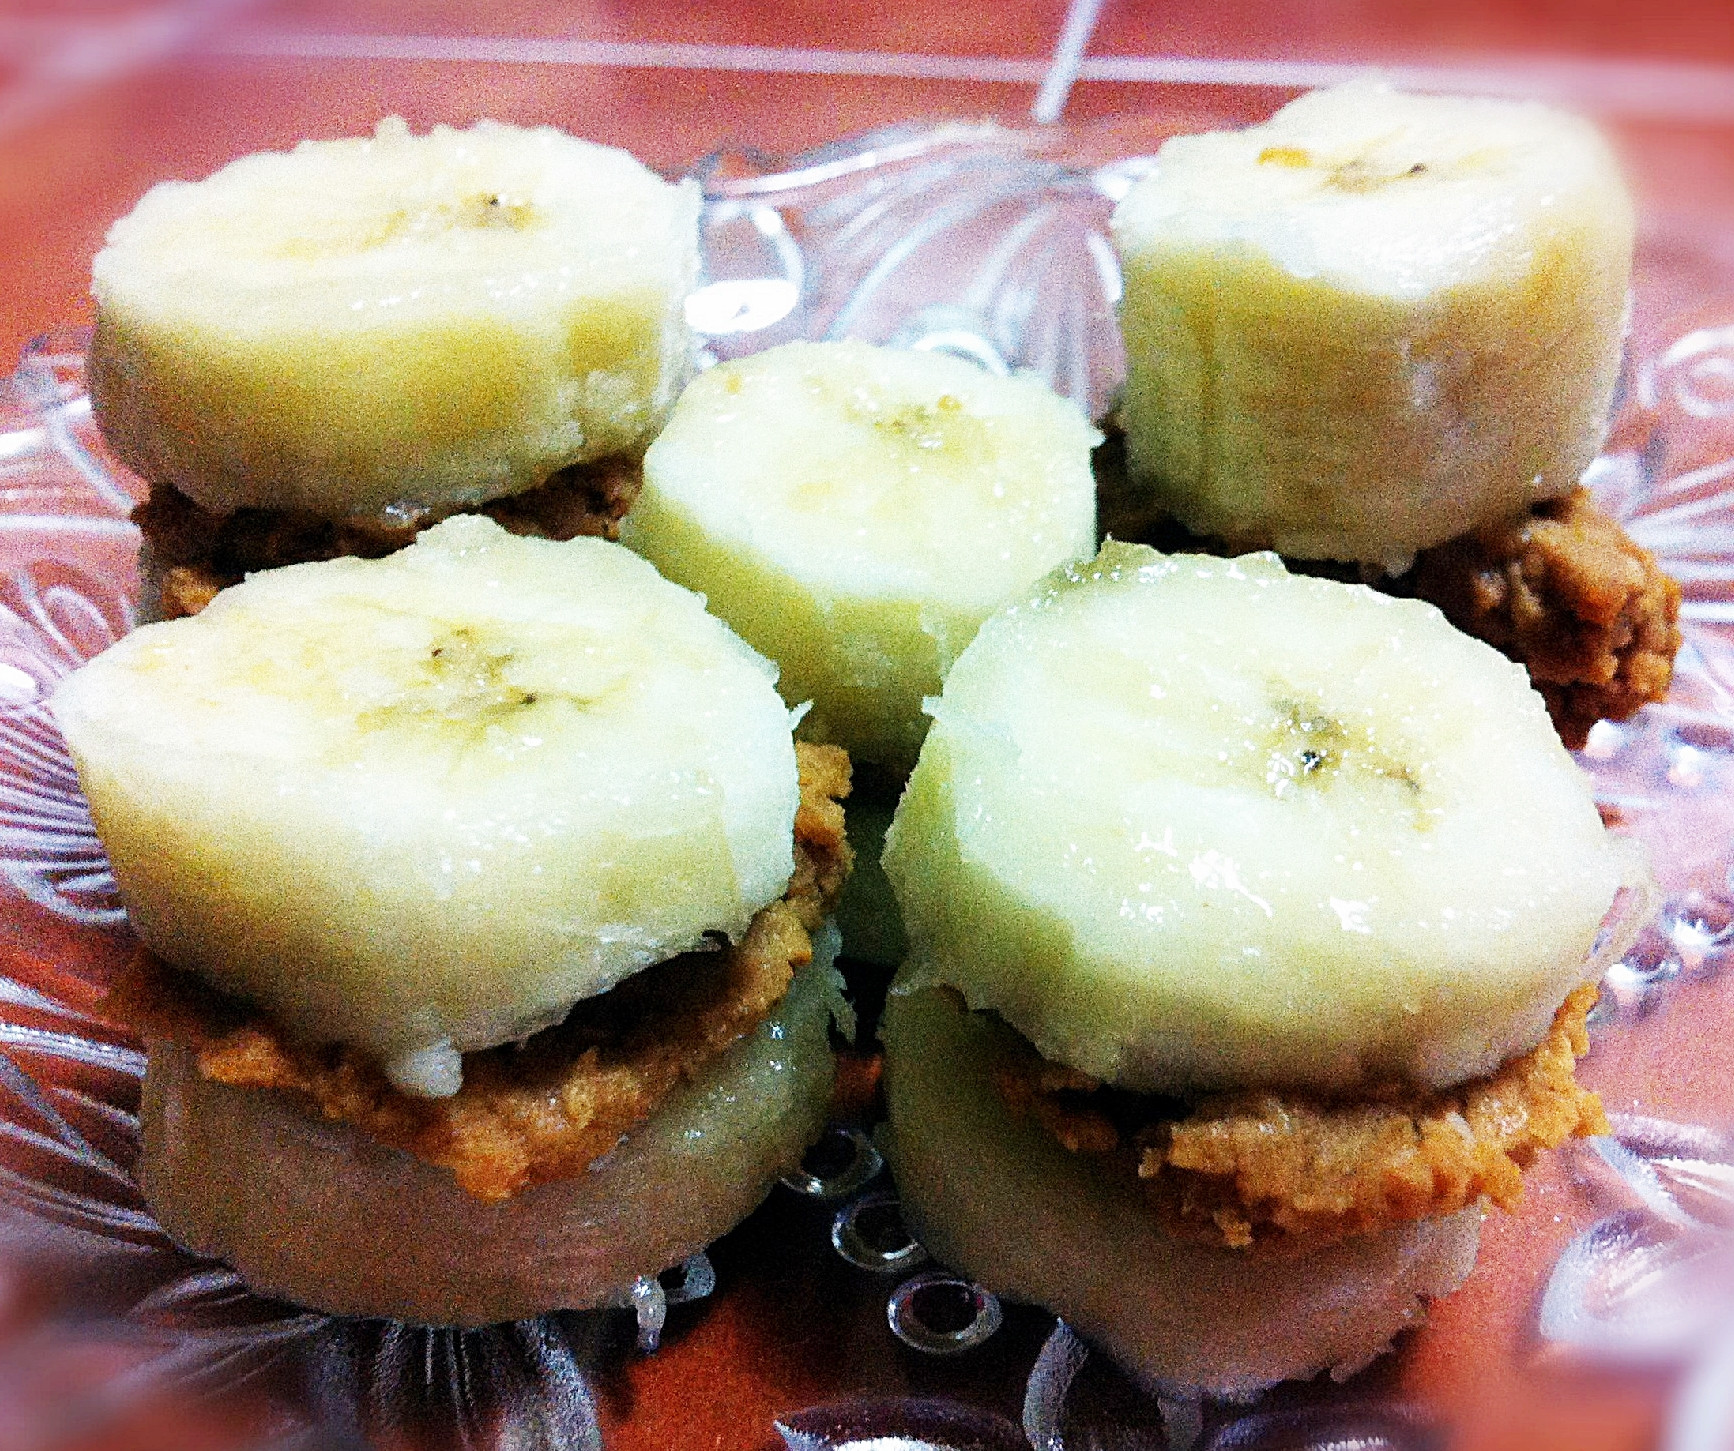 Healthy Dessert Ideas  Healthy Dessert Ideas Banana and Peanut Butter Bites